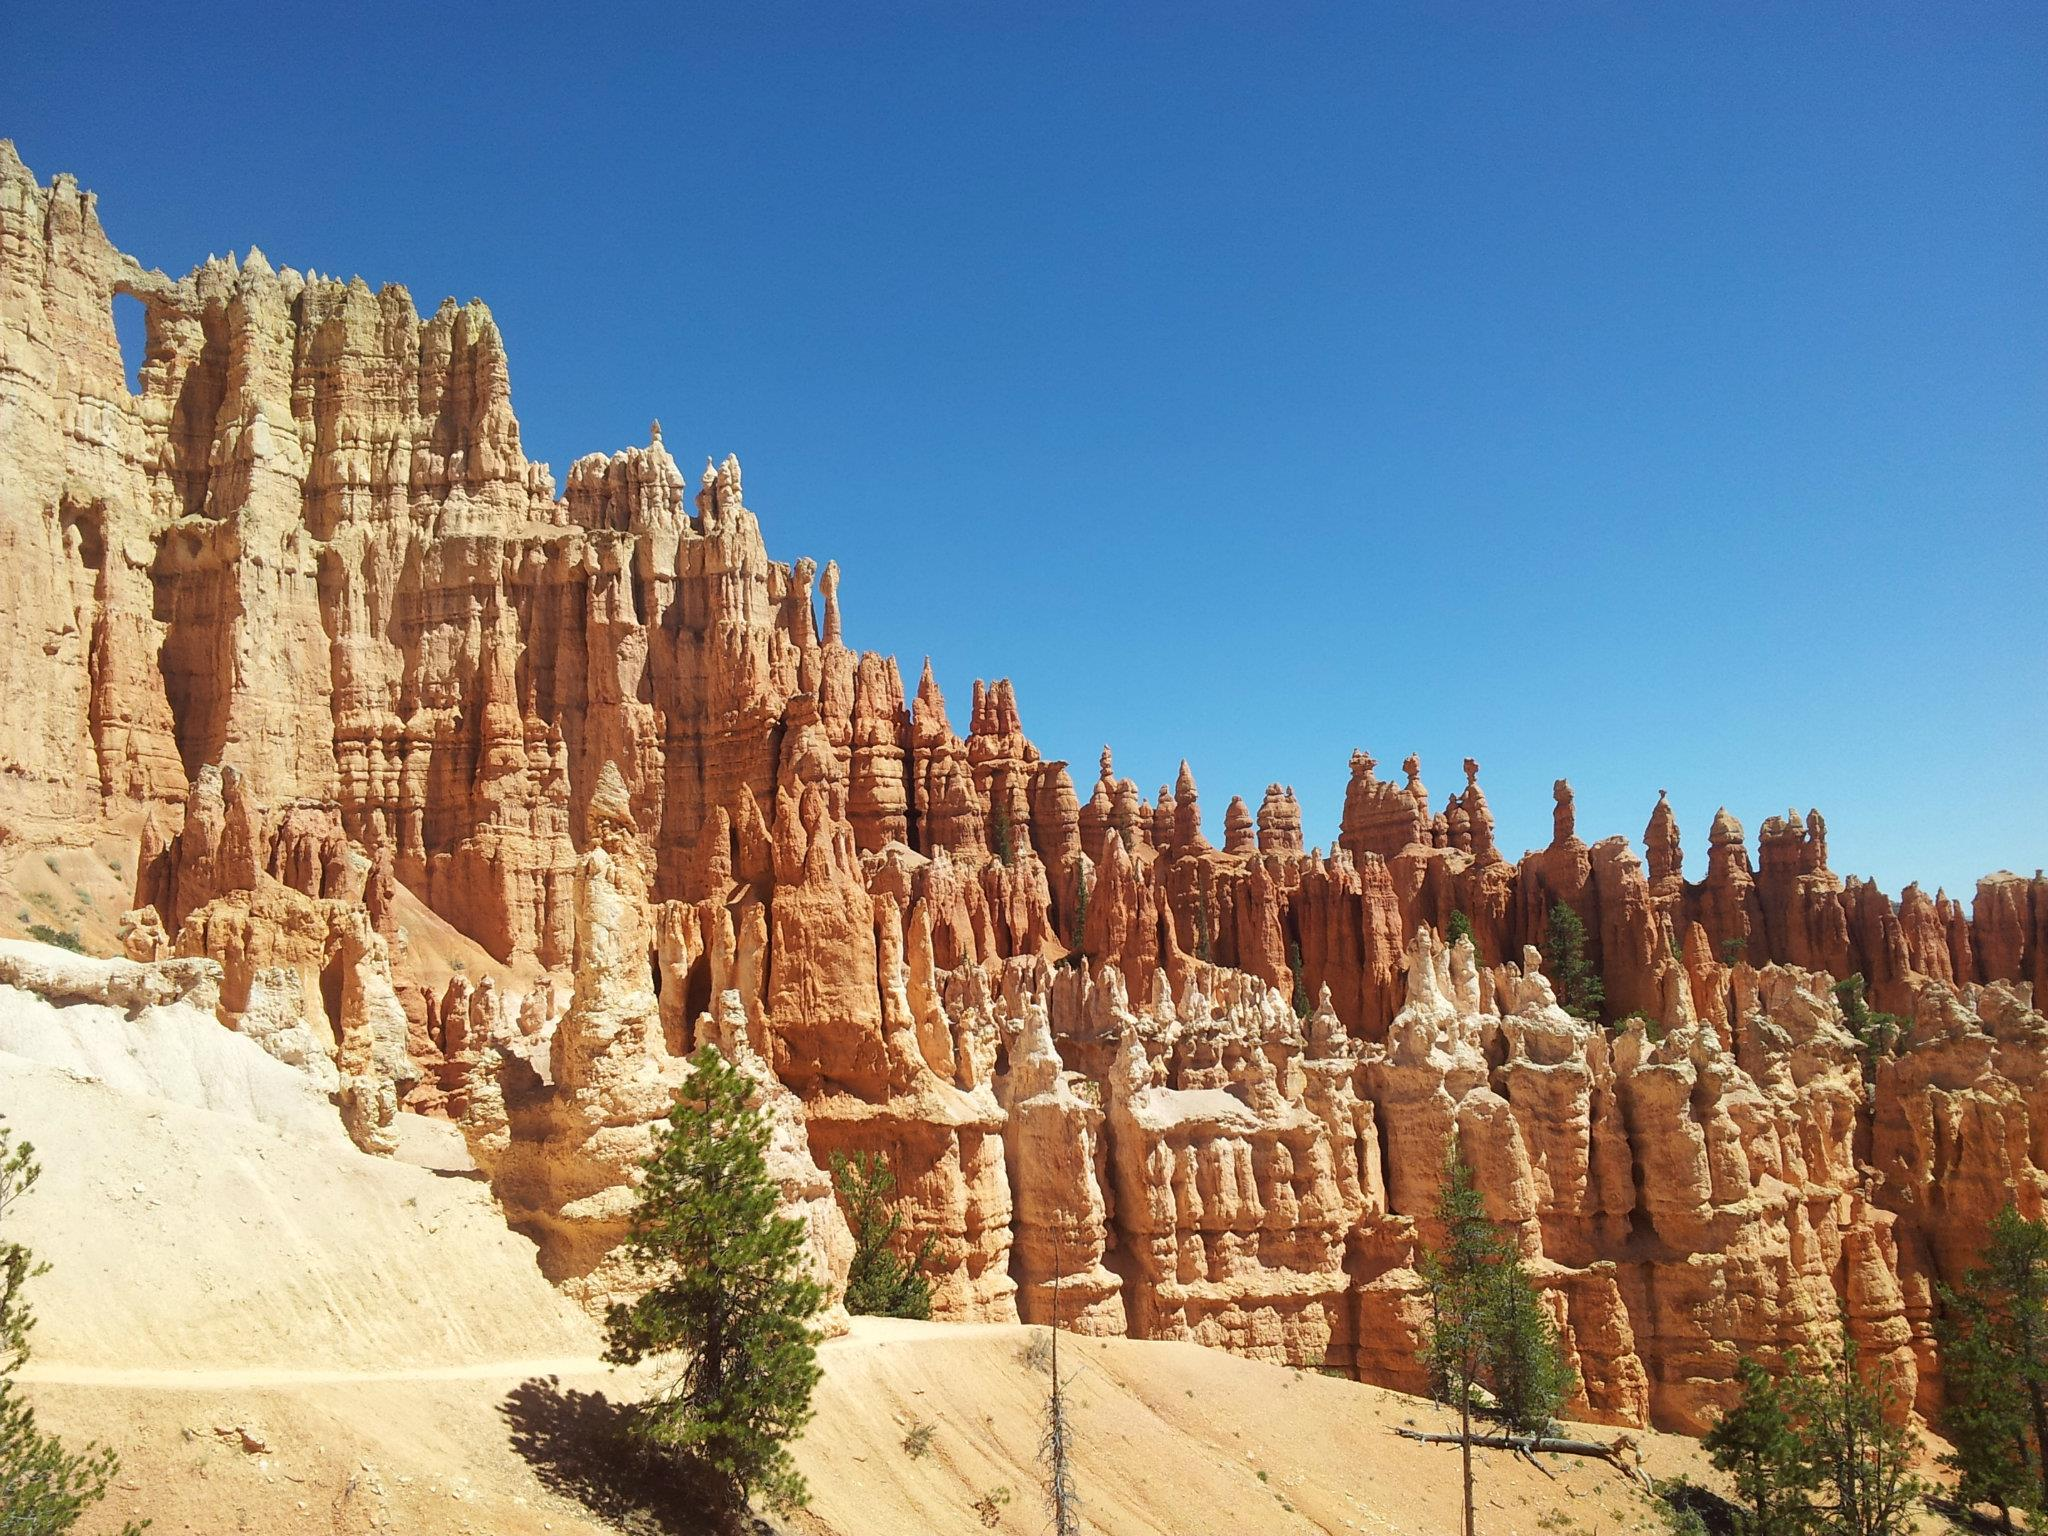 The numerous hoodoos had some great coloring to them